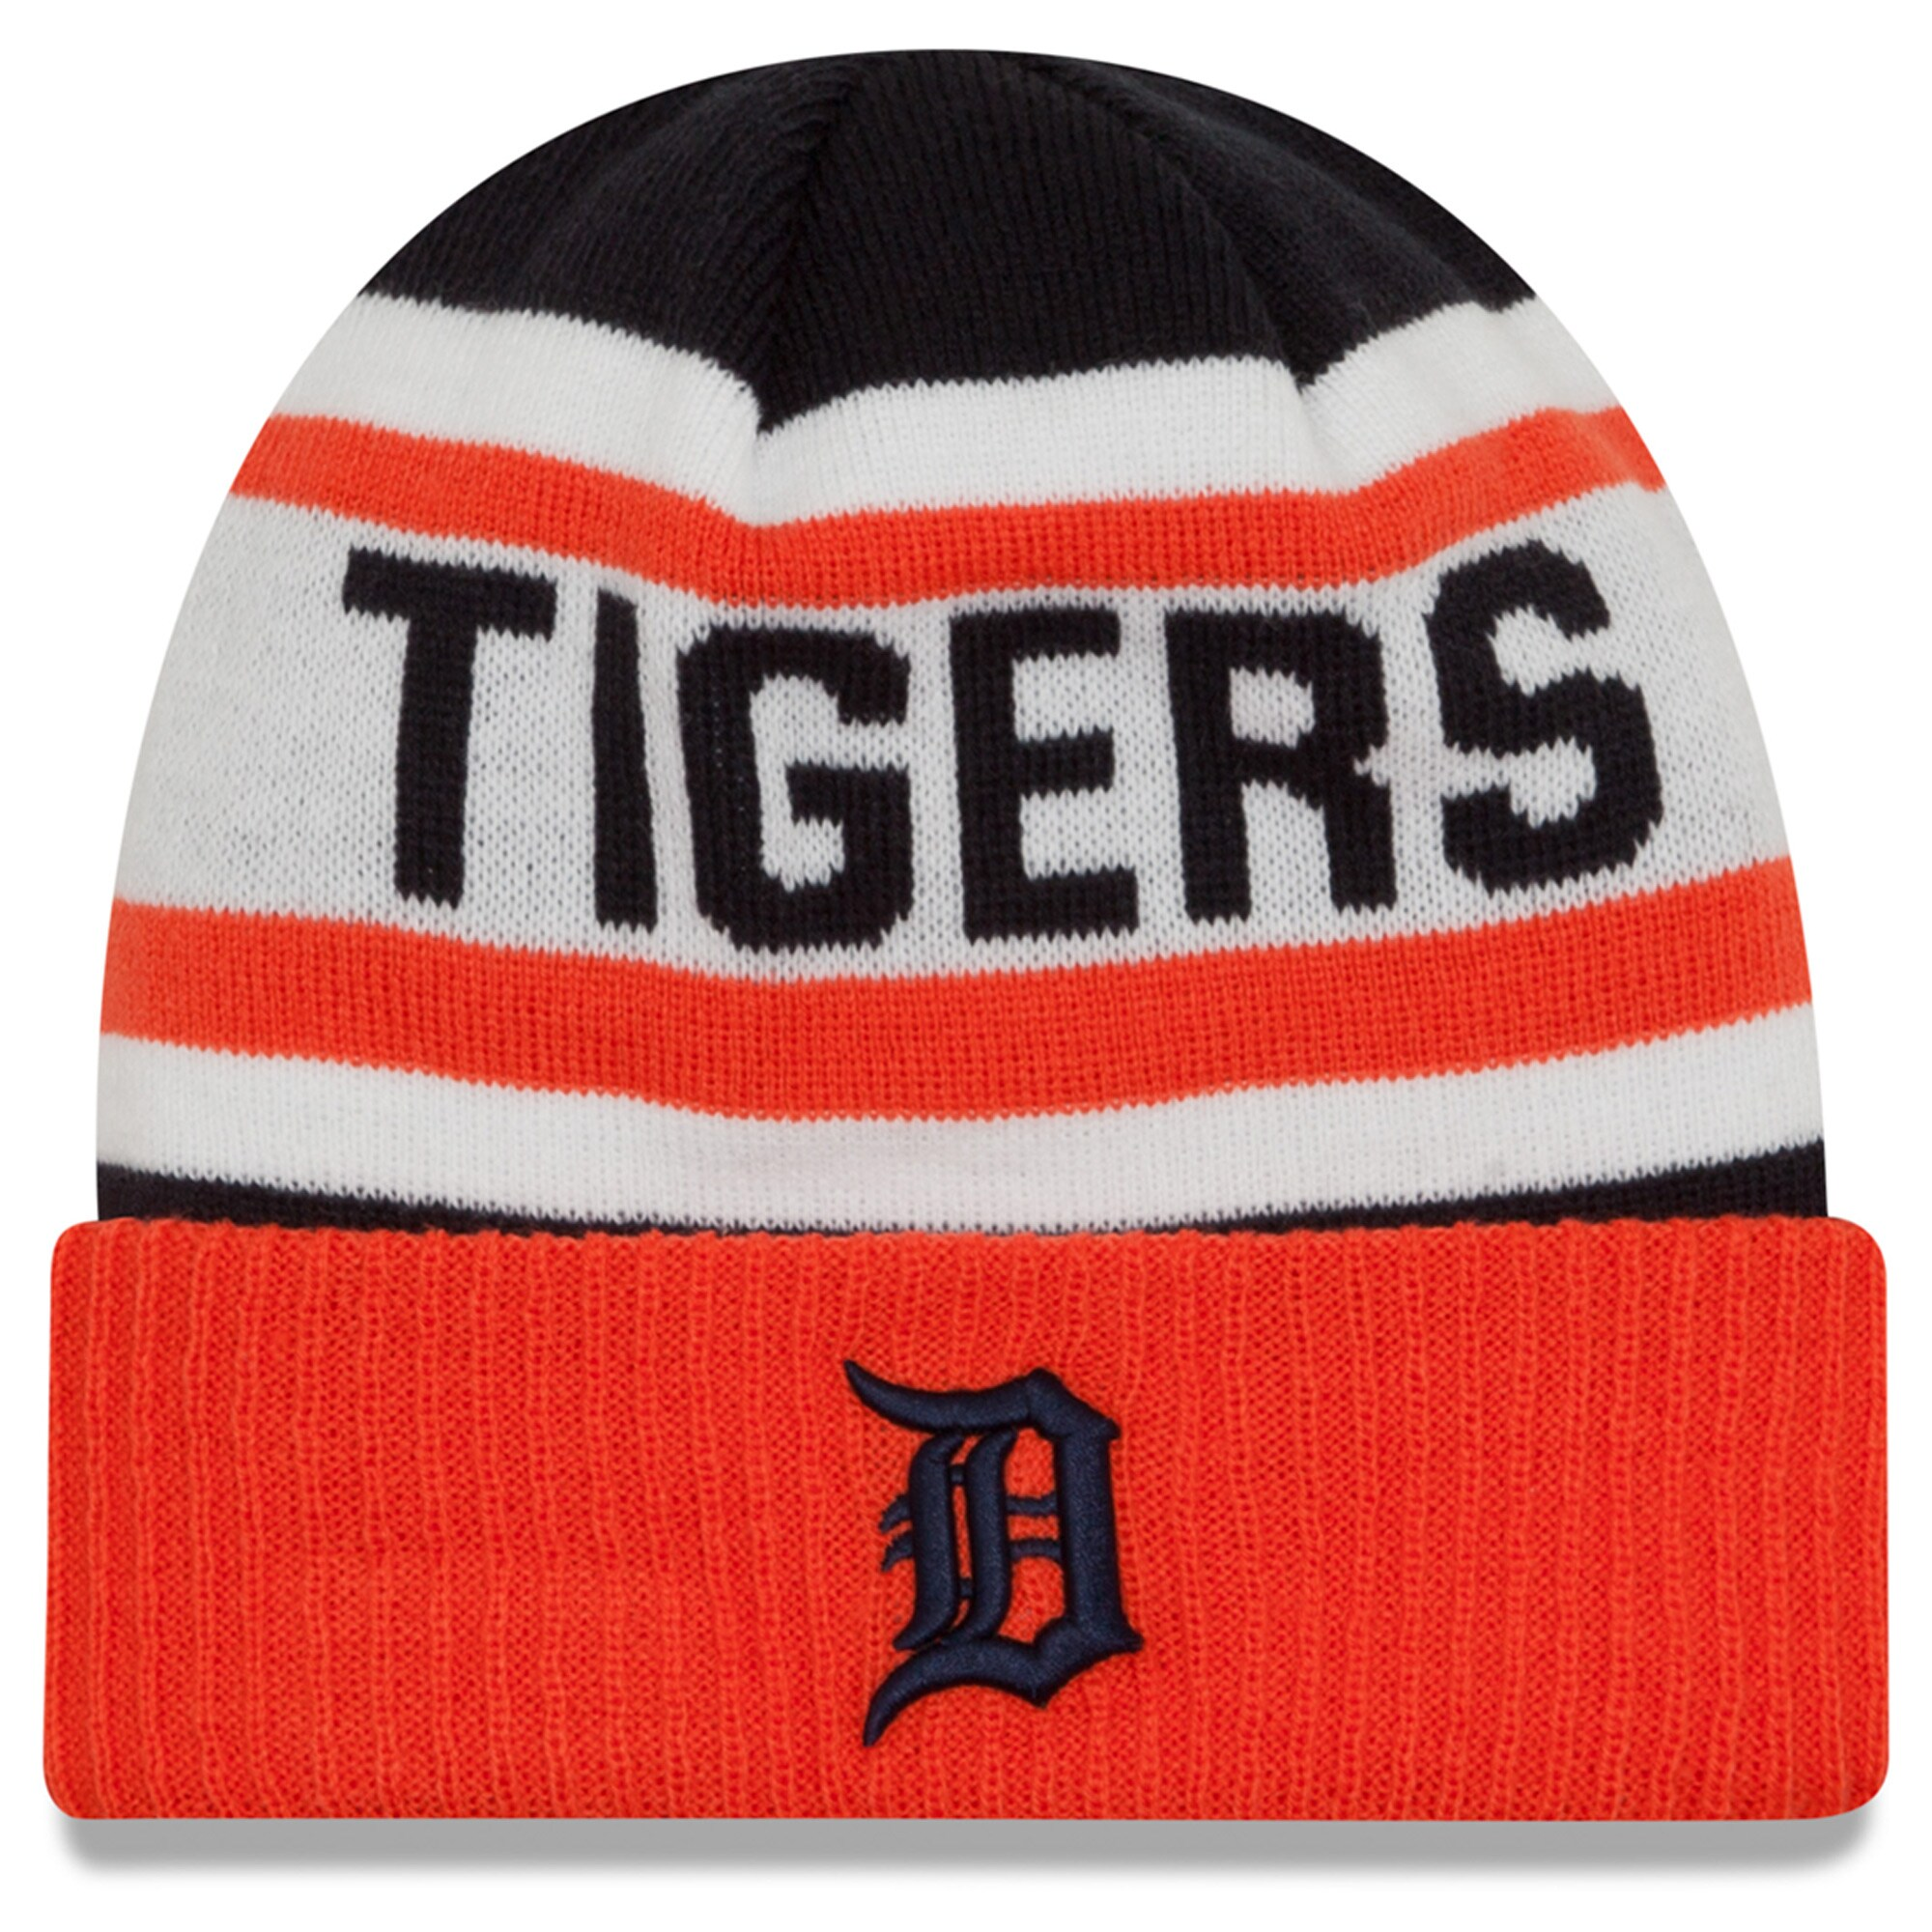 Detroit Tigers New Era Biggest Fan 2.0 Cuffed Knit Hat - White/Orange